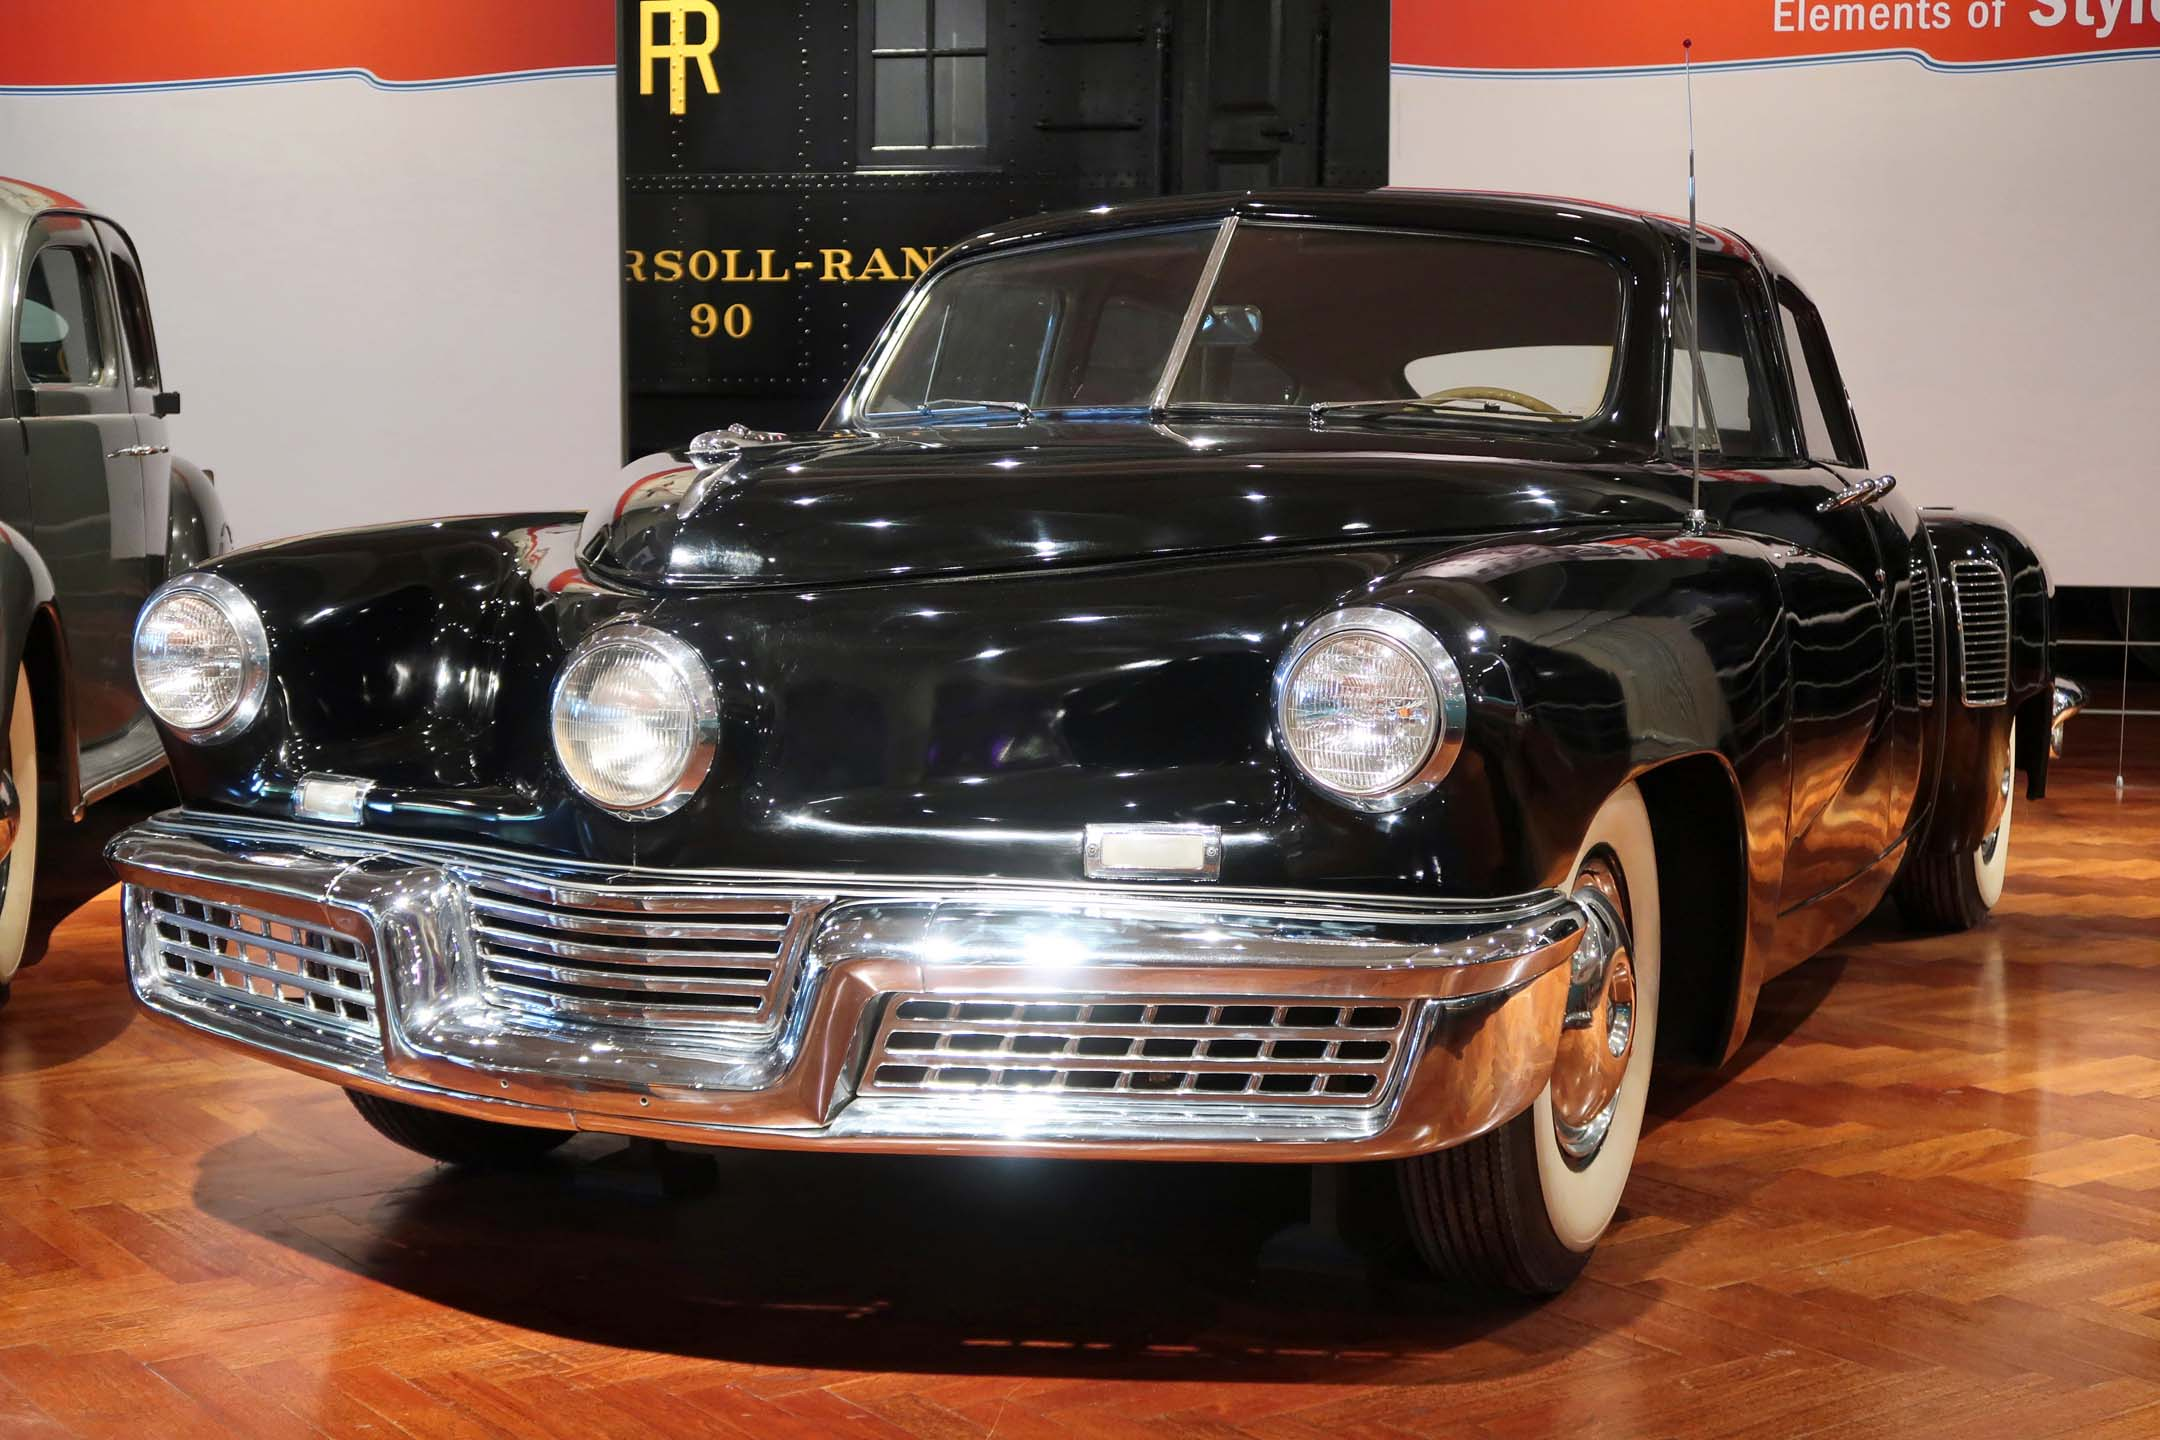 The 1948 Tucker never went into production, but the museum owns one of the 51 prototypes made